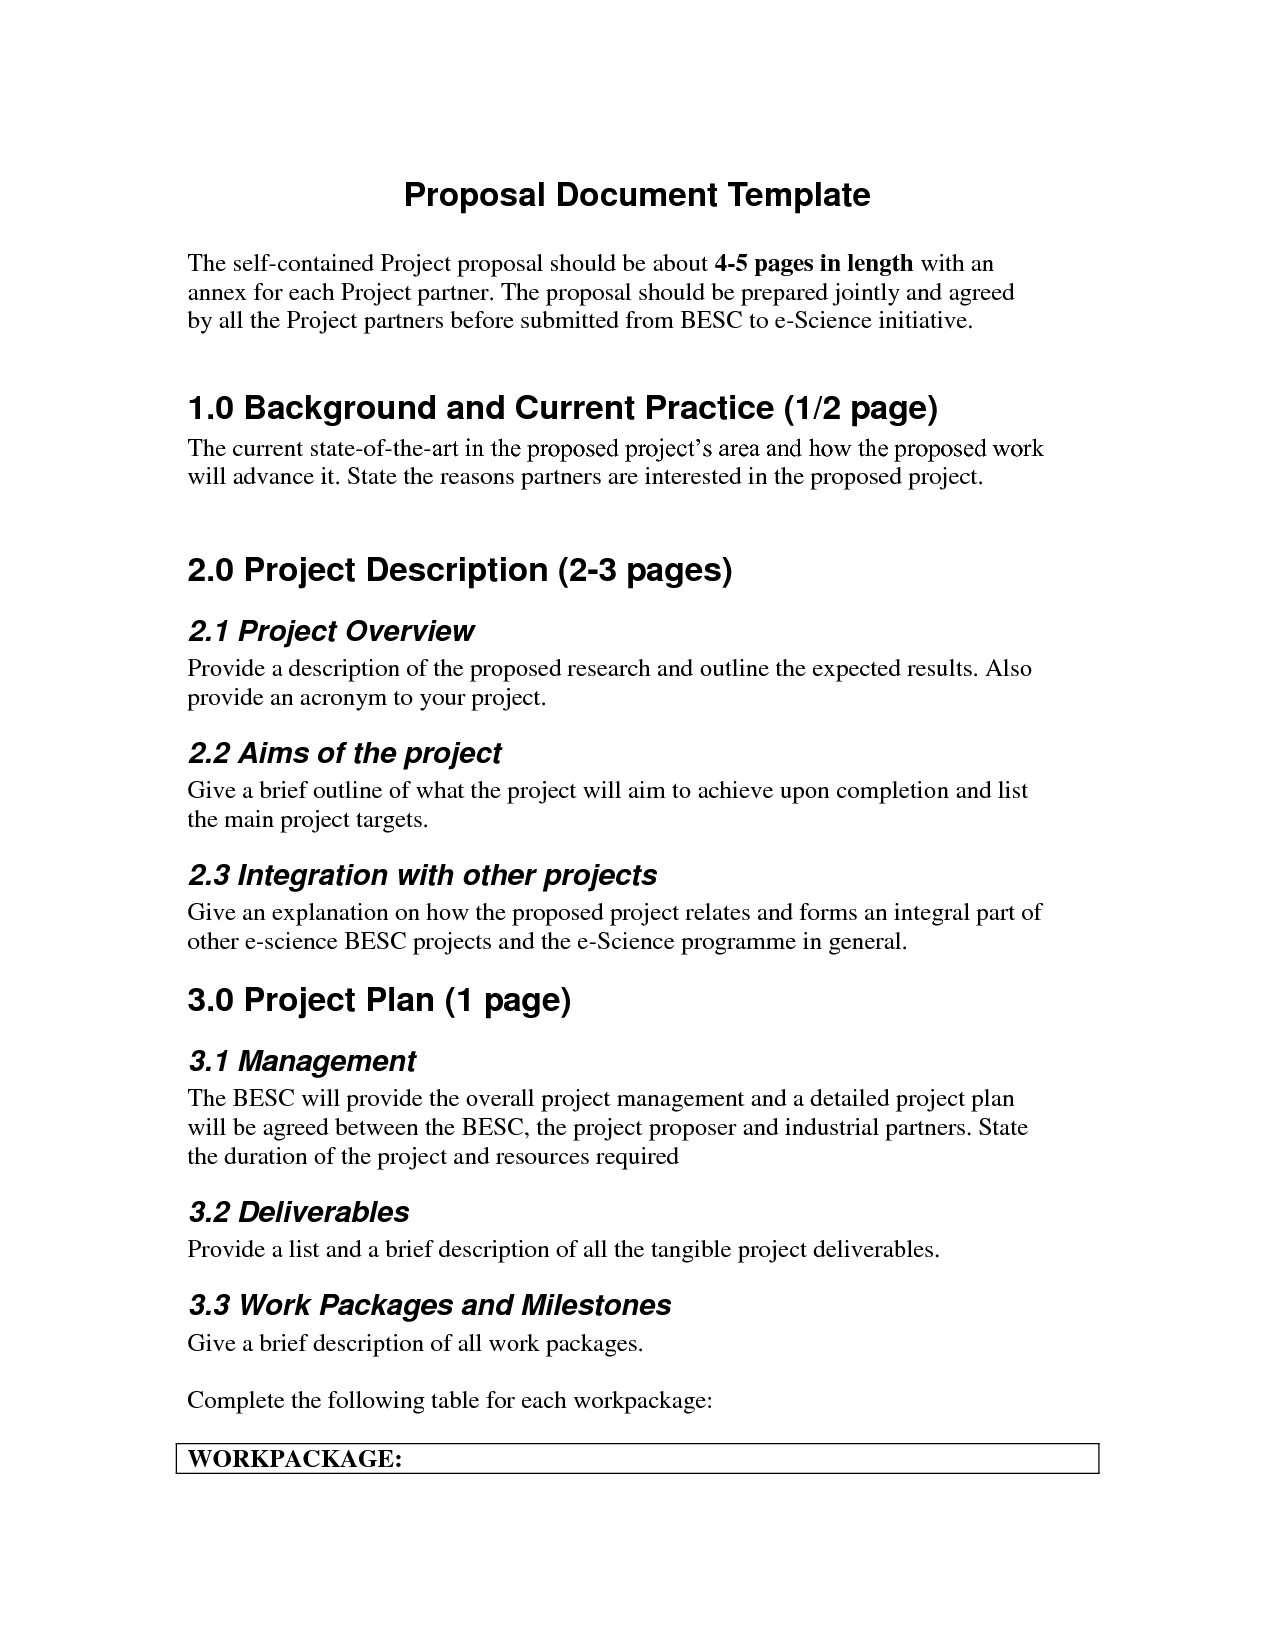 Job Application Essay Example Essay Proposal Template Proposal Essay Topics Before Students Write A  College Research Paper First Day At College Essay also God Does Not Exist Essay Essay Proposal Template Proposal Essay Topics Before Students  Essay My Self